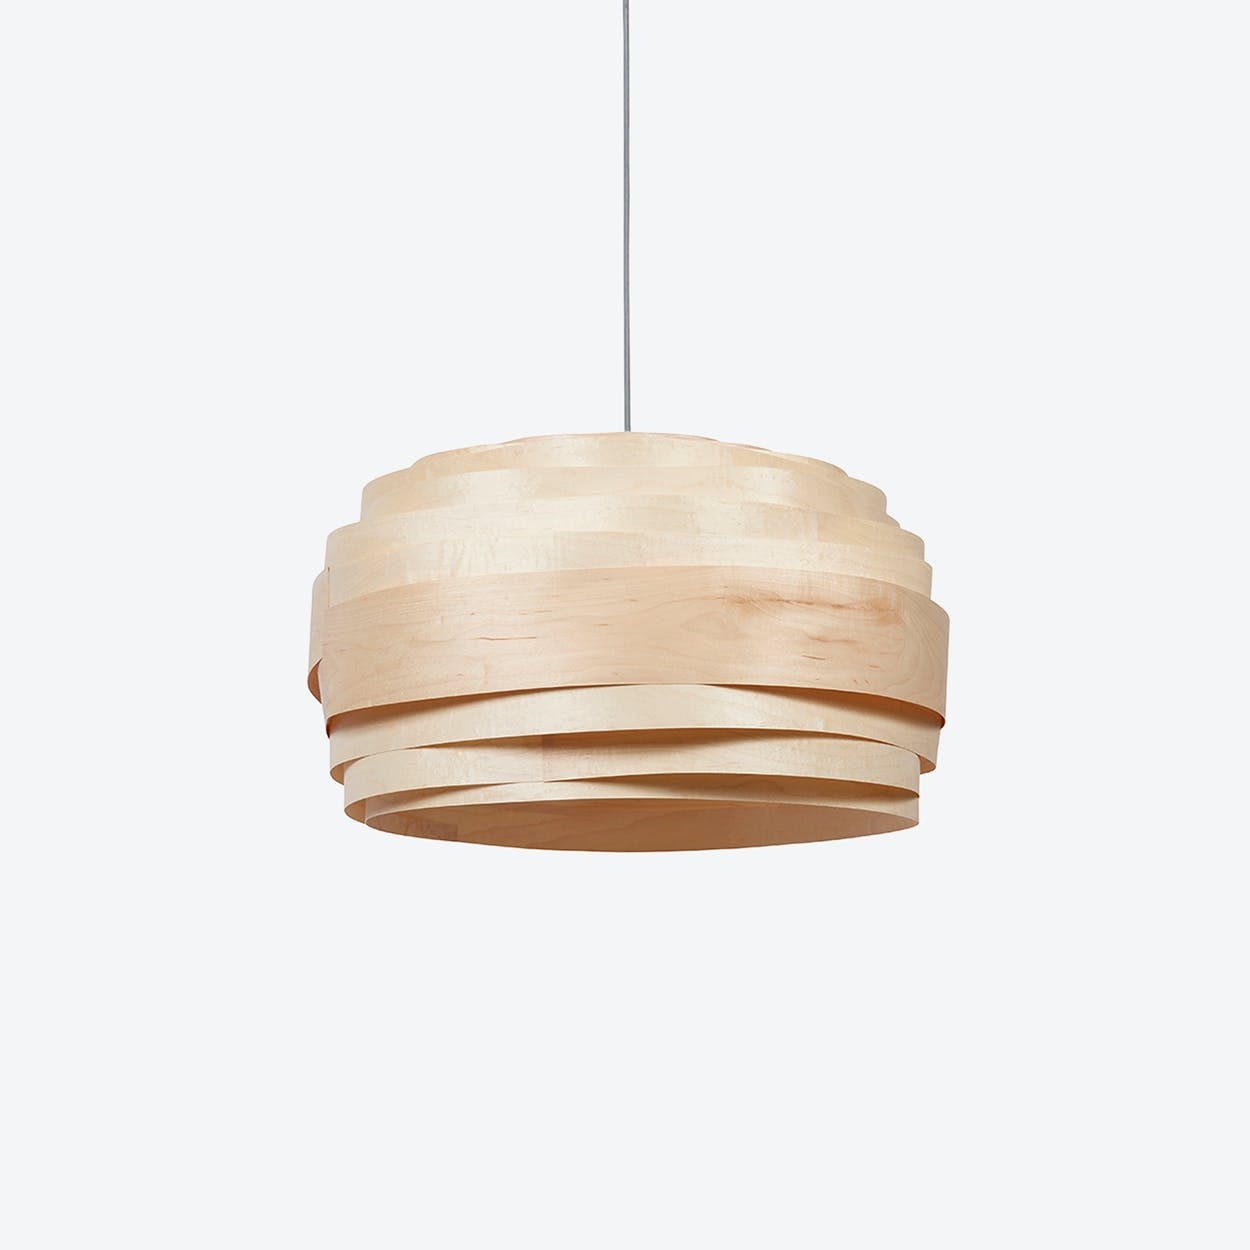 Light Cloud Lampshade in Maple Veneer (White Cable)